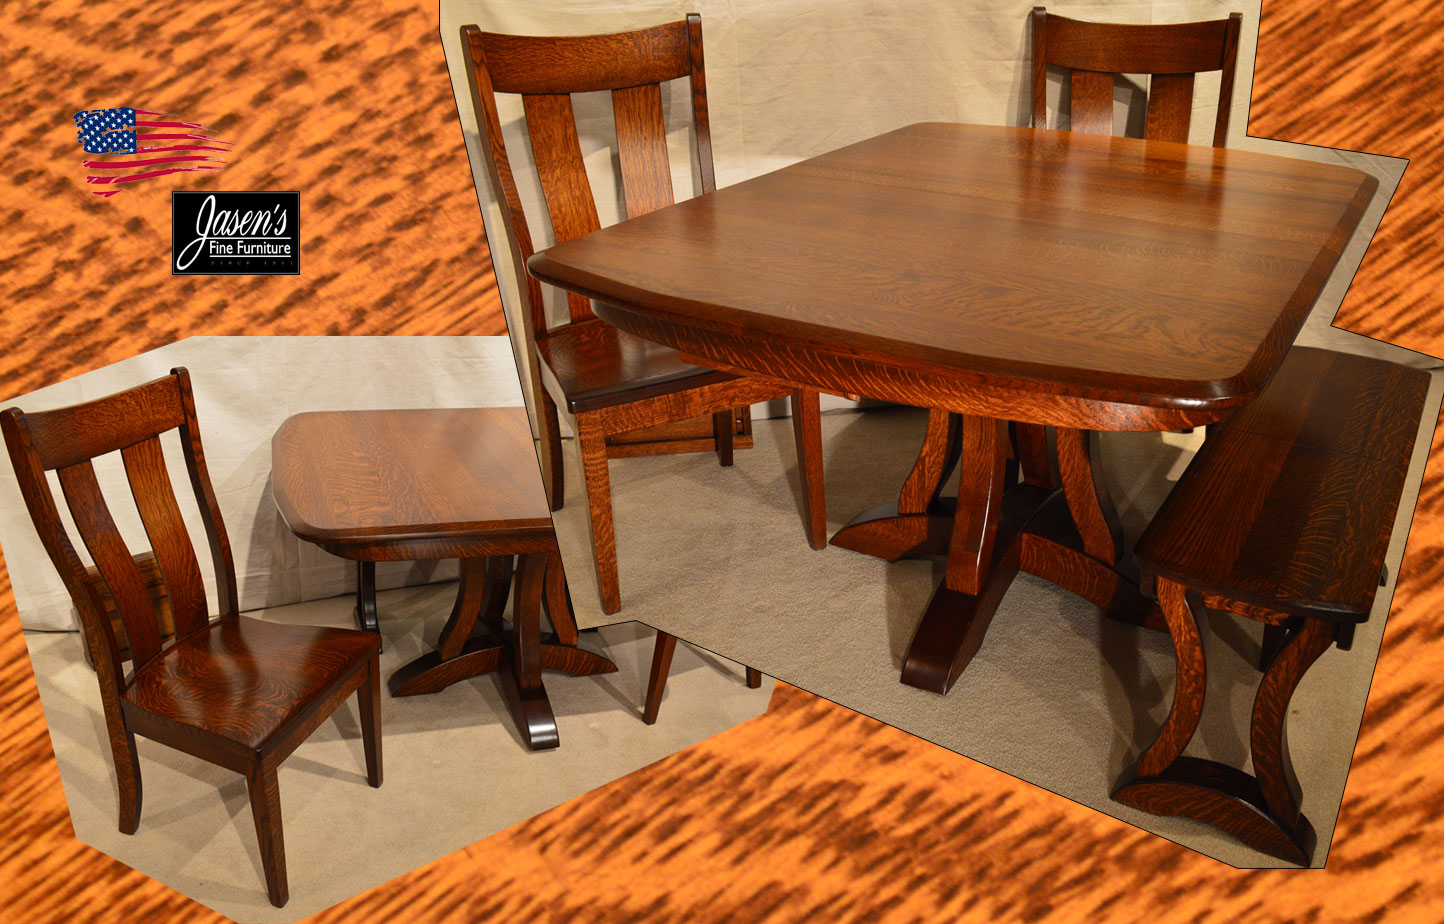 Amish Richfield Table Amp Side Chairs Jasens Furniture Roseville Mi